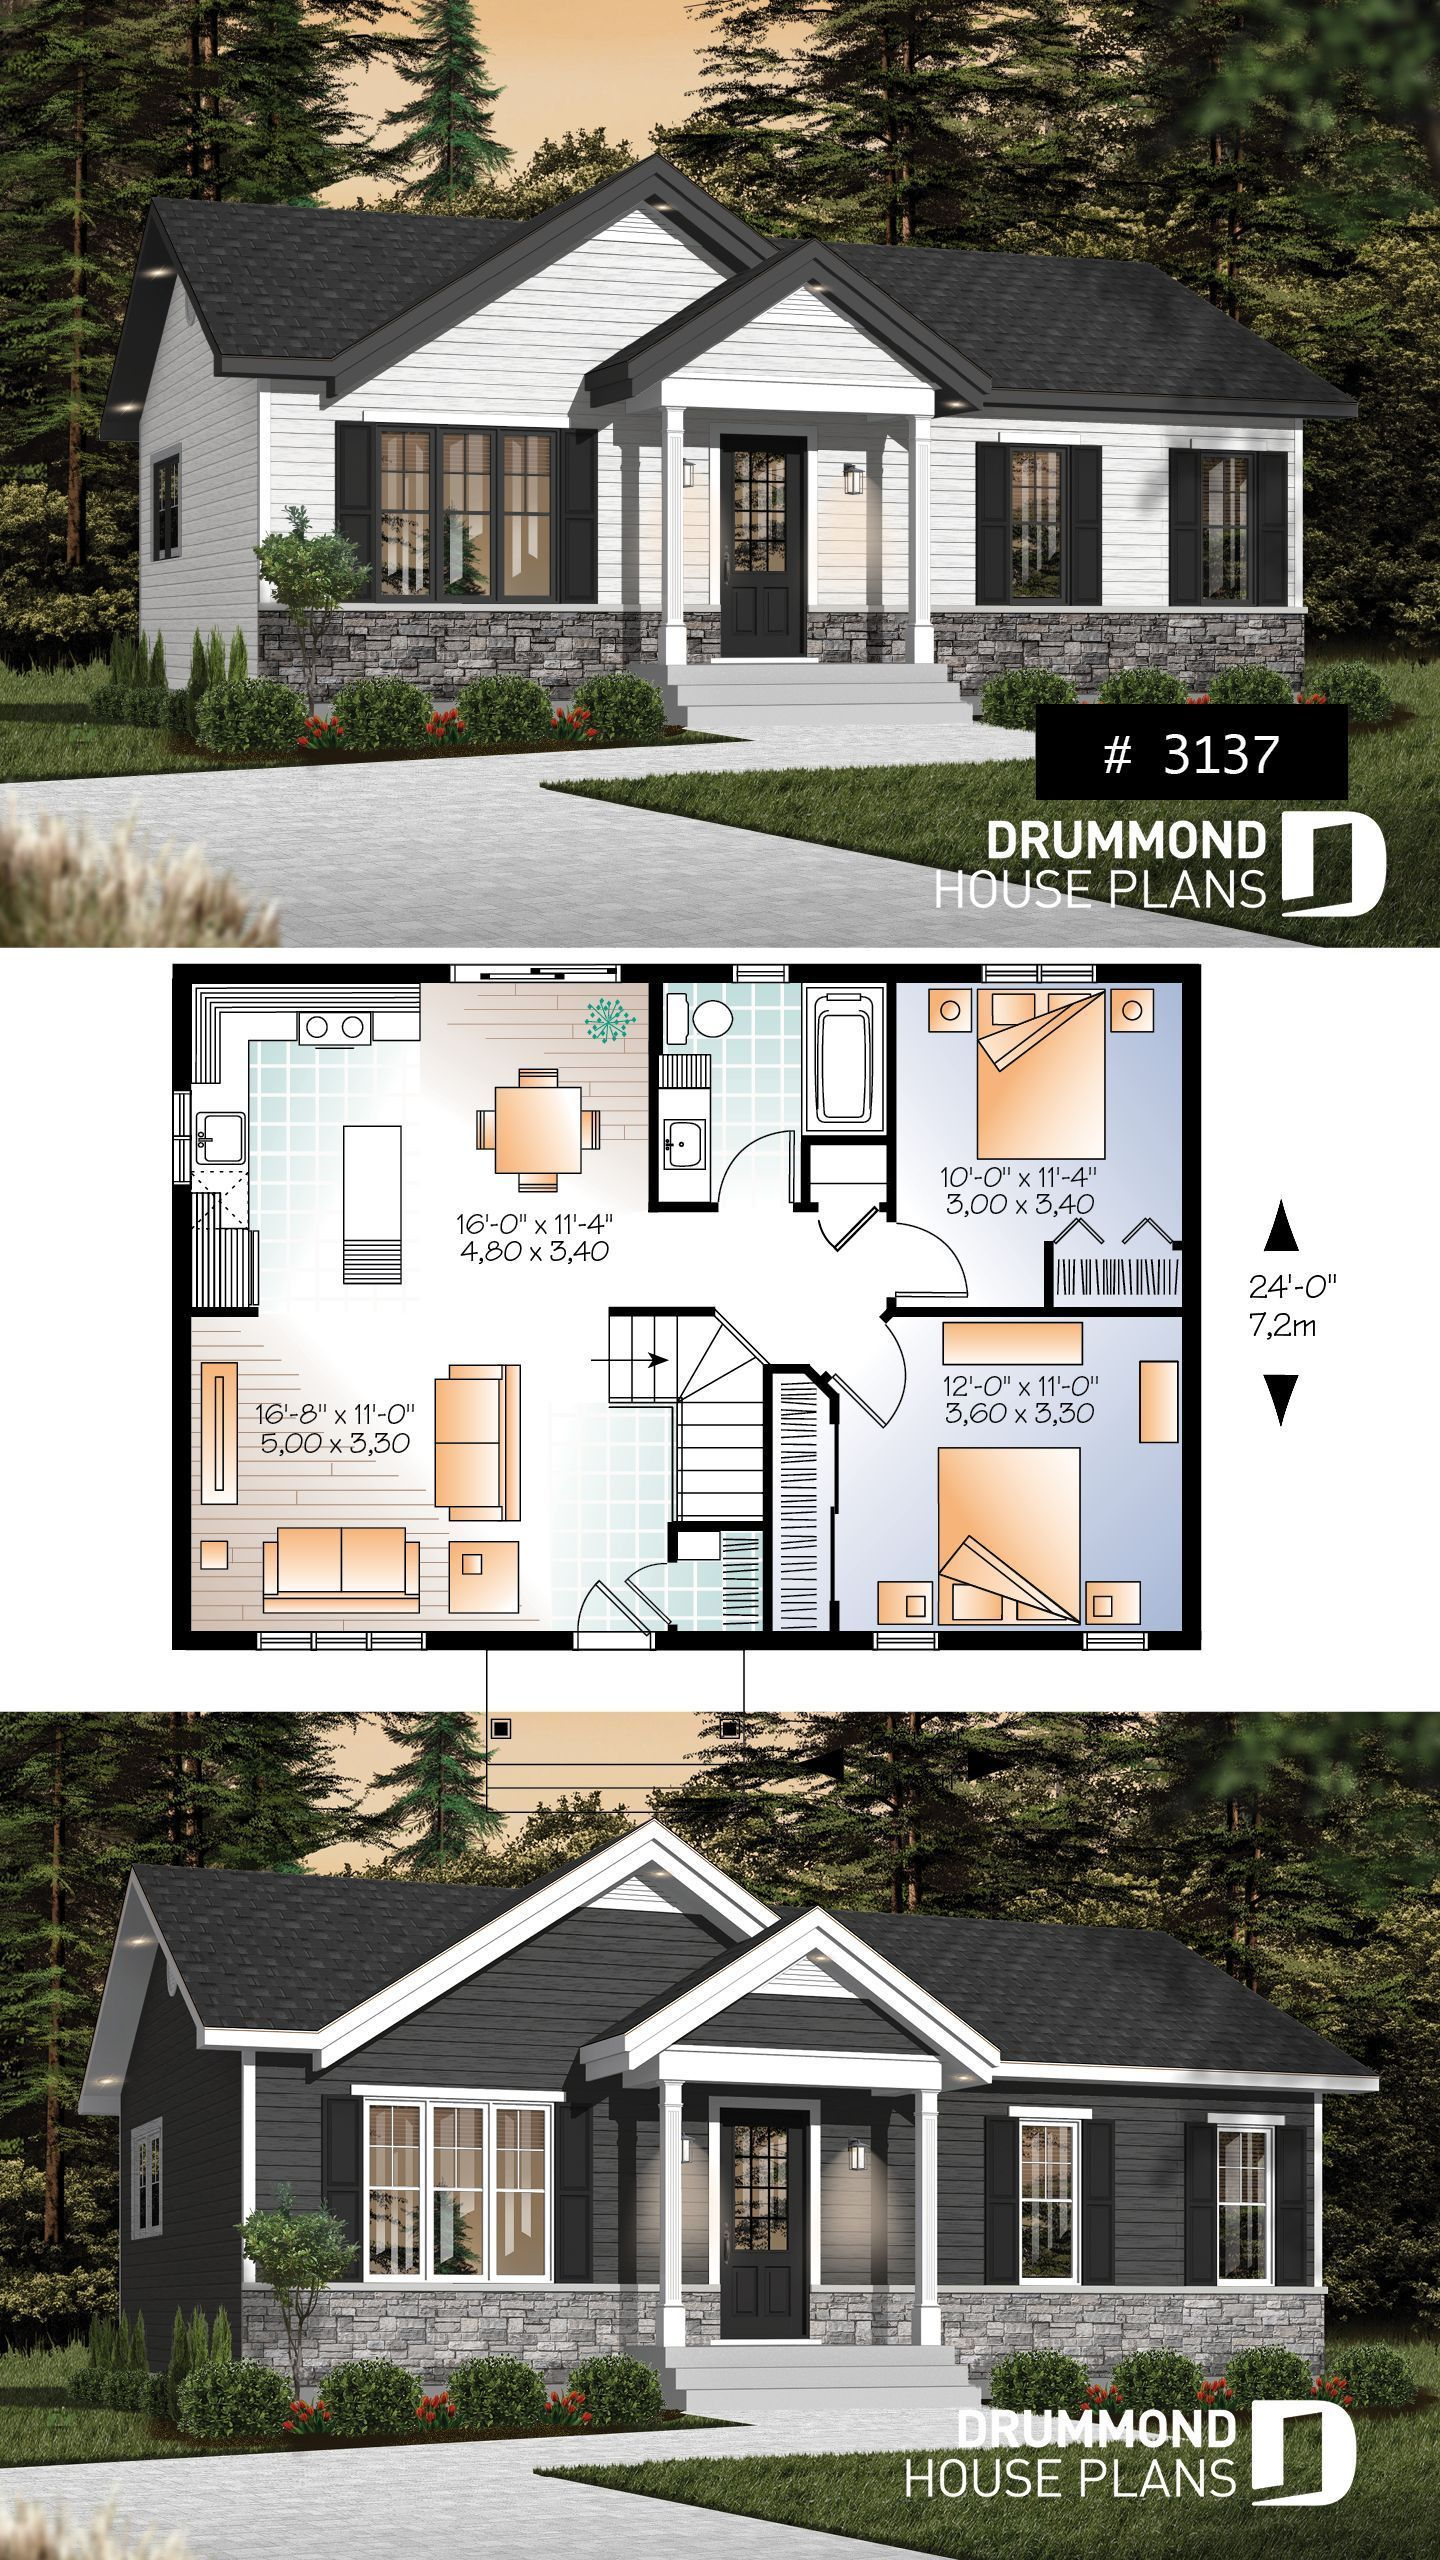 English Country Decor Small House Design Plans Layout Floor Small House Des Small House Design Exterior Small House Design Plans Small House Design